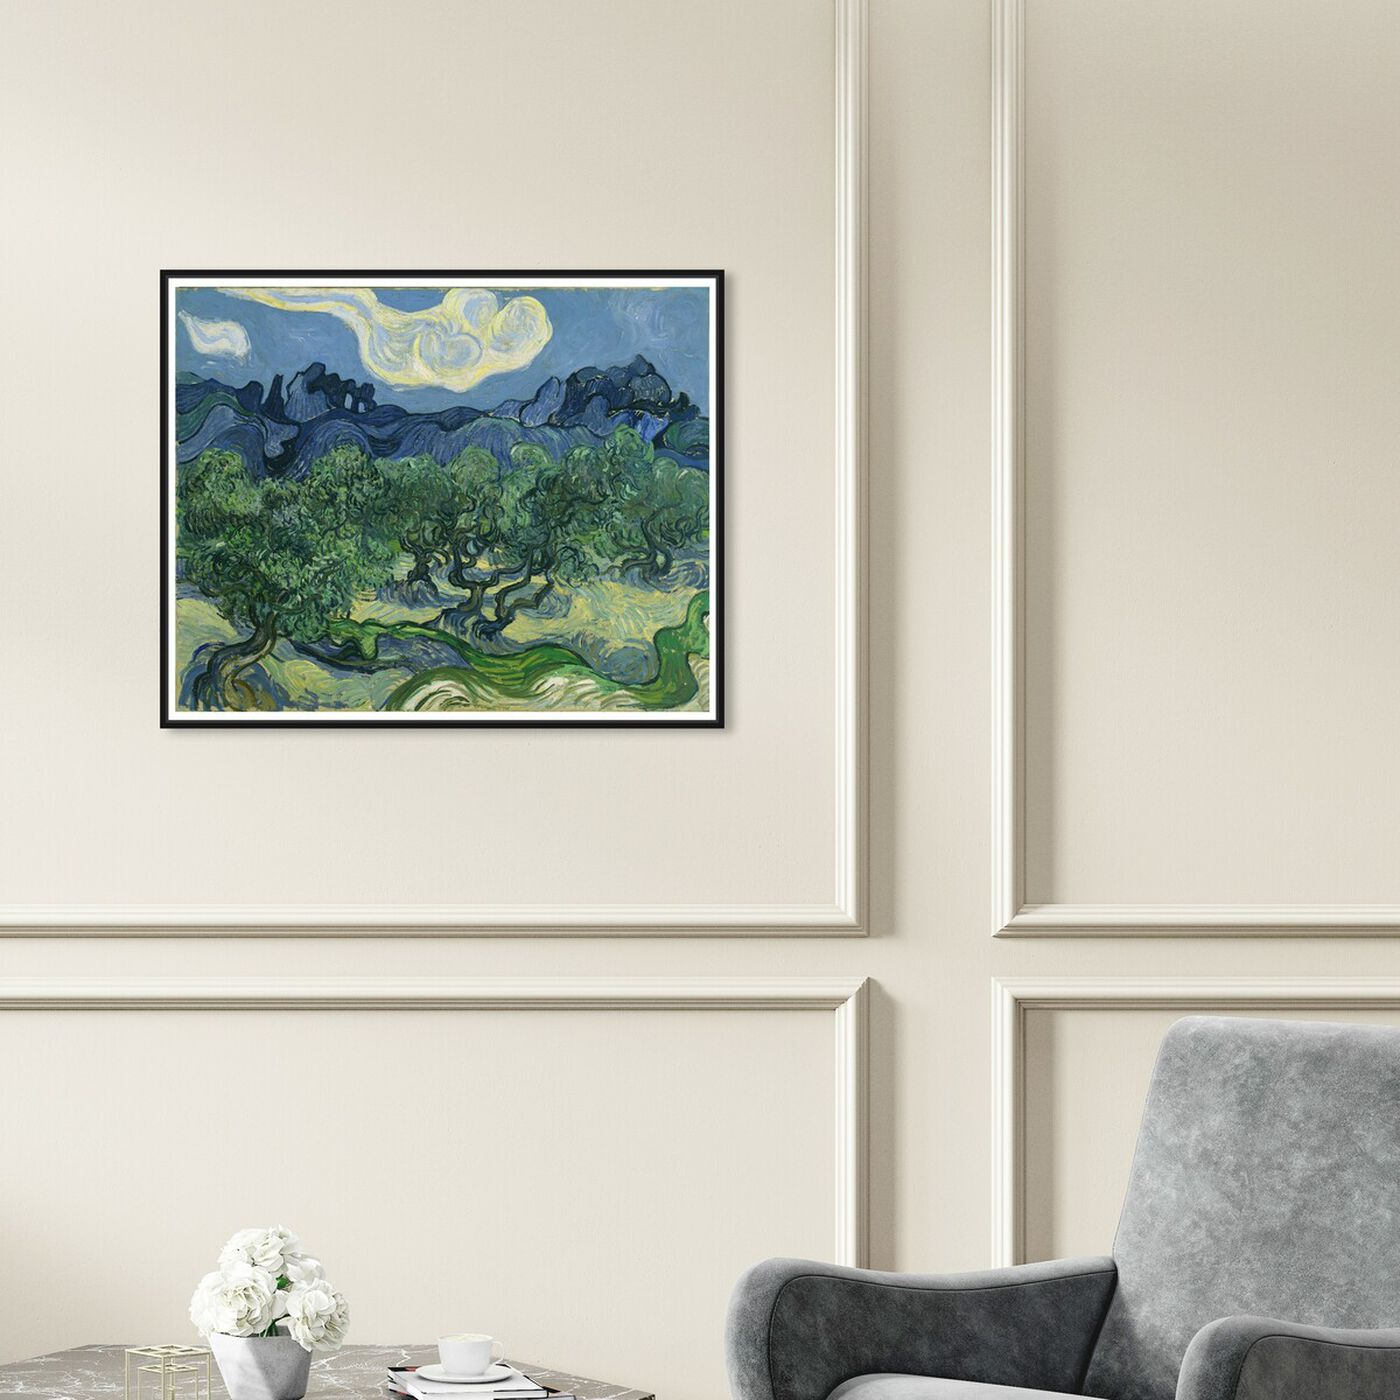 Hanging view of Van Gogh - The Olive Trees featuring classic and figurative and impressionism art.